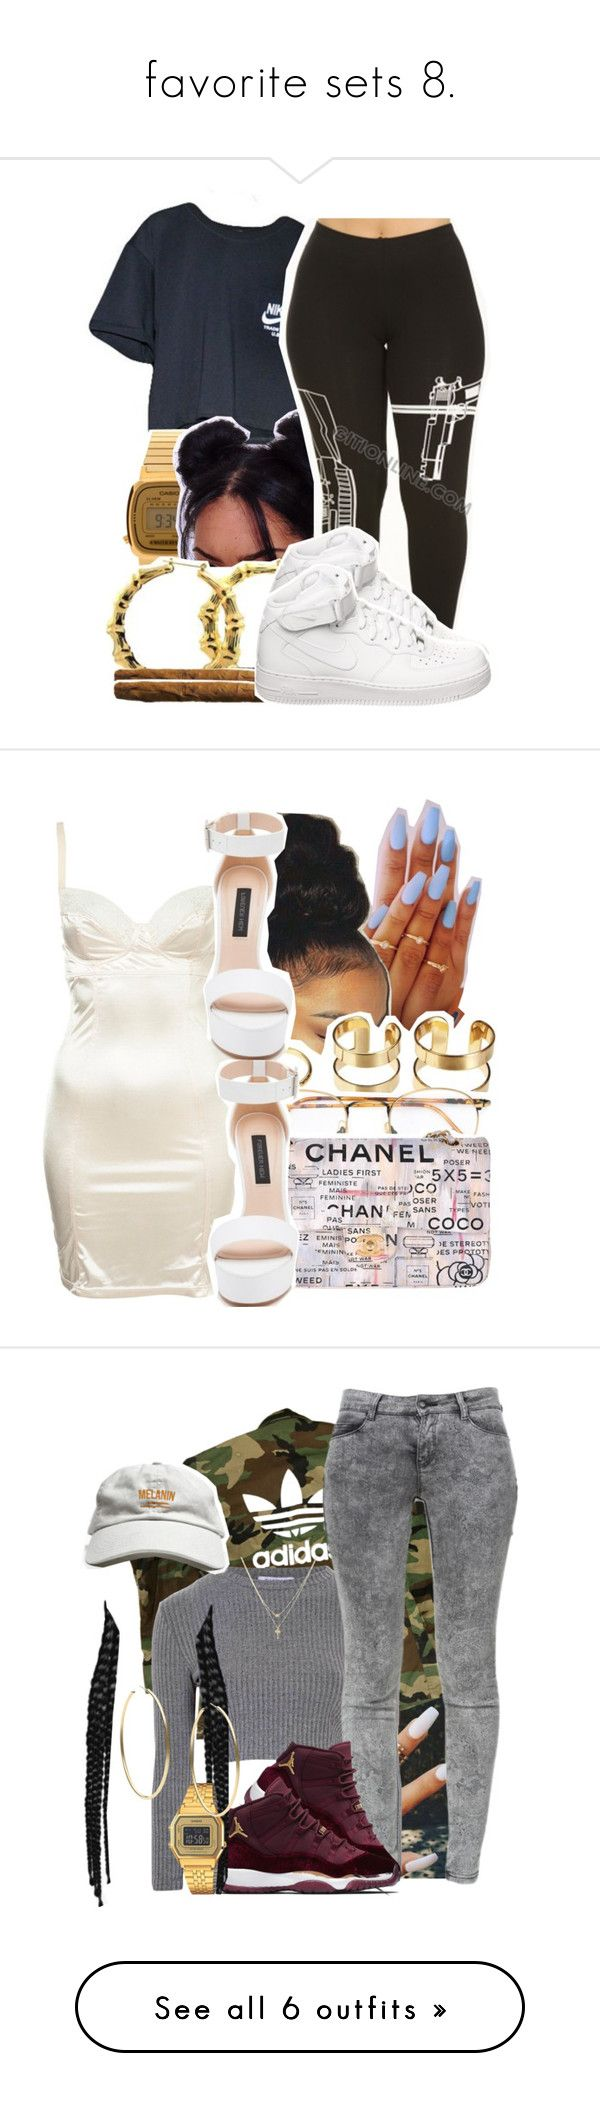 """""""favorite sets 8."""" by trillestqueen ❤ liked on Polyvore featuring NIKE, Casio, Fergie, Persol, Chanel, Forever New, adidas, Glamorous, Zara and Betsey Johnson"""